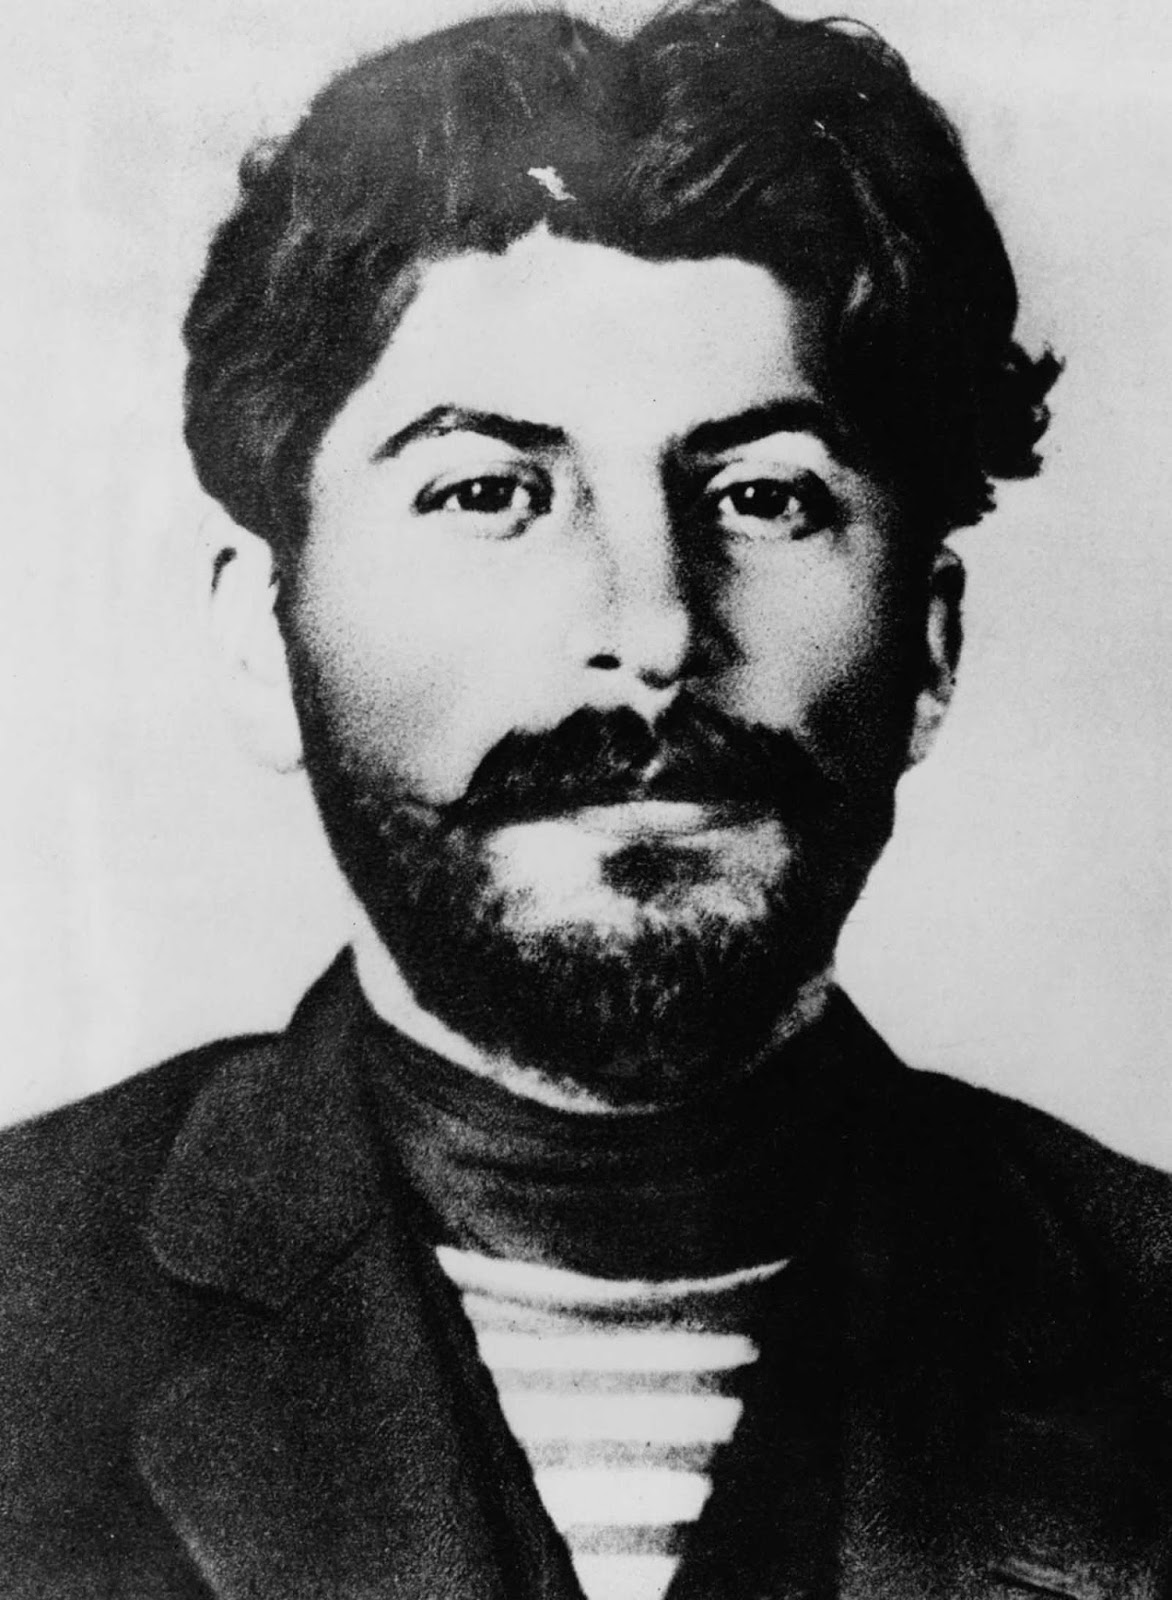 Stalin in 1911 after his release from exile.